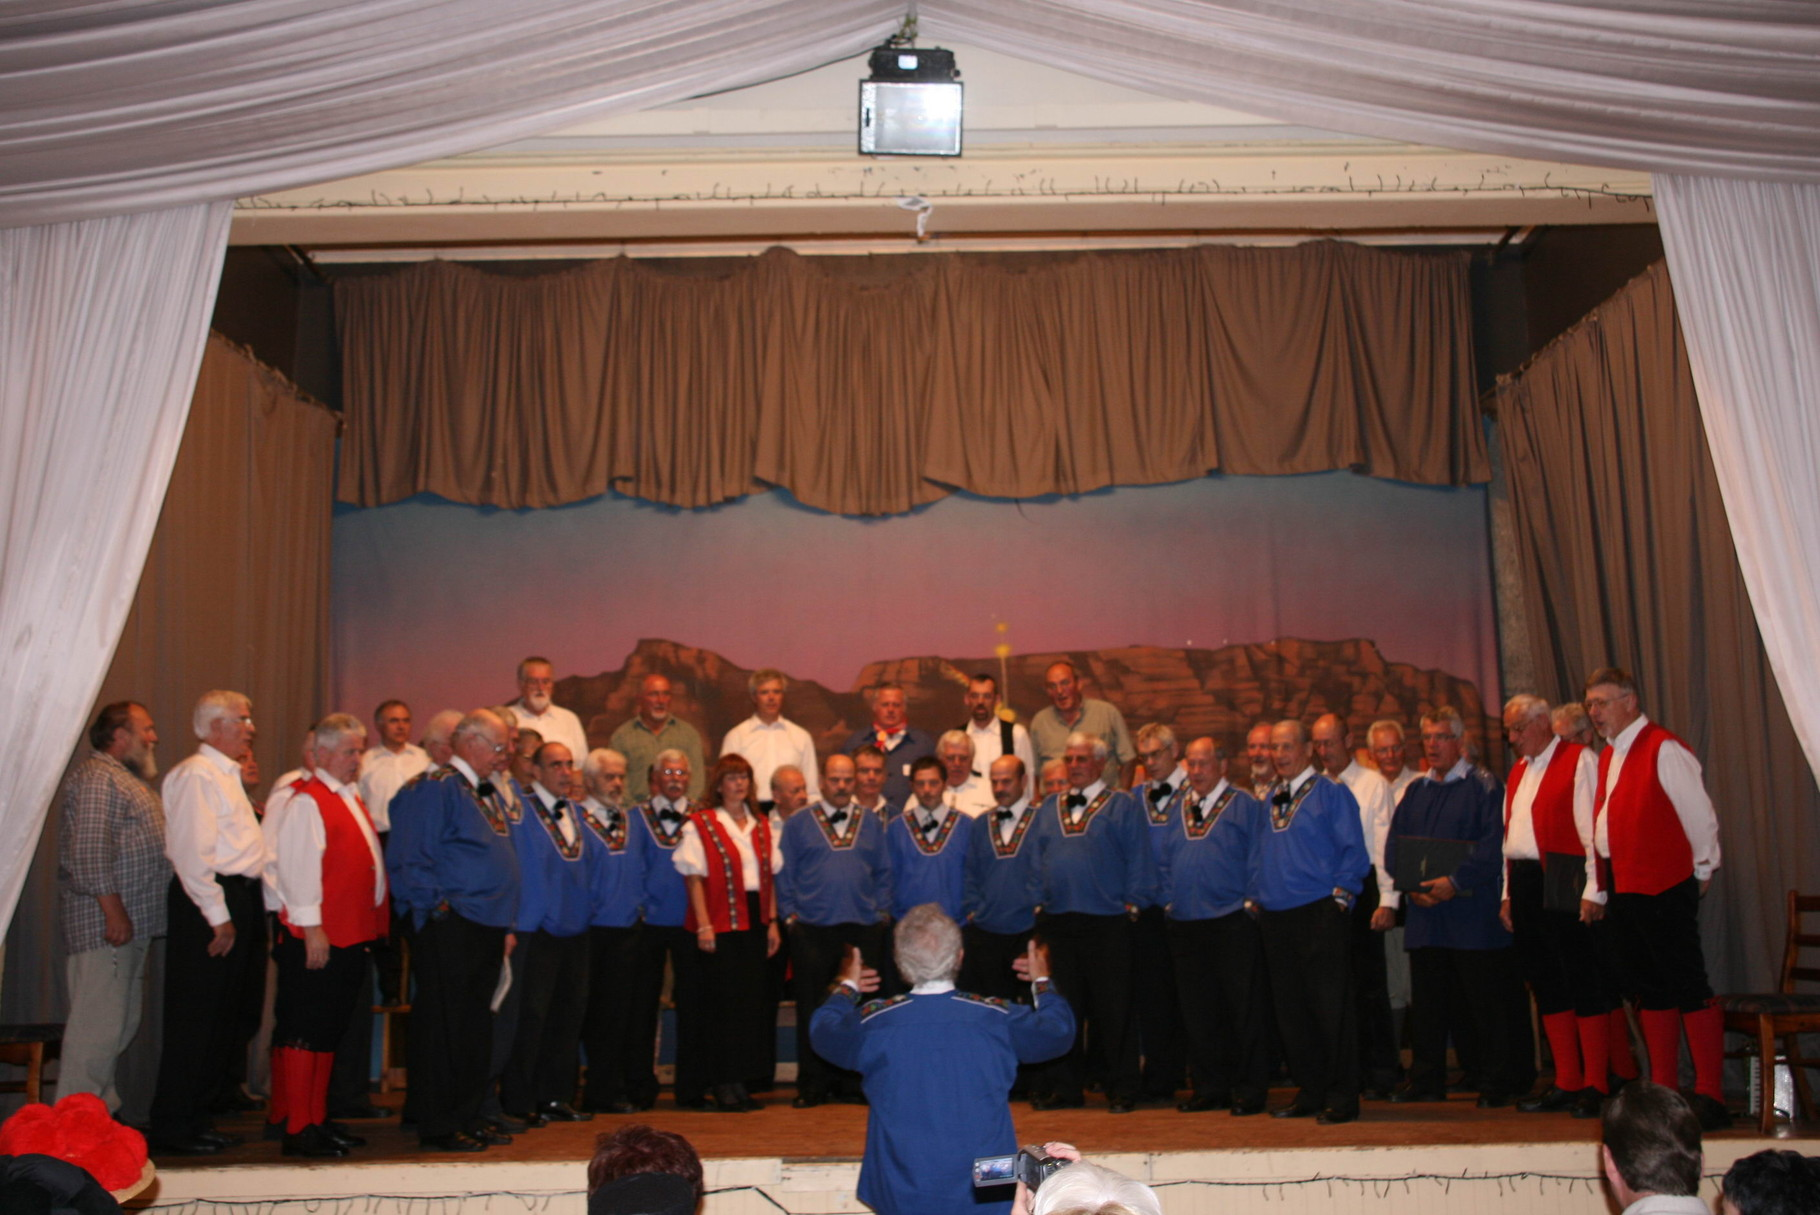 LK Enzweihingen - Performance in German Club Cape Town  - South Africa